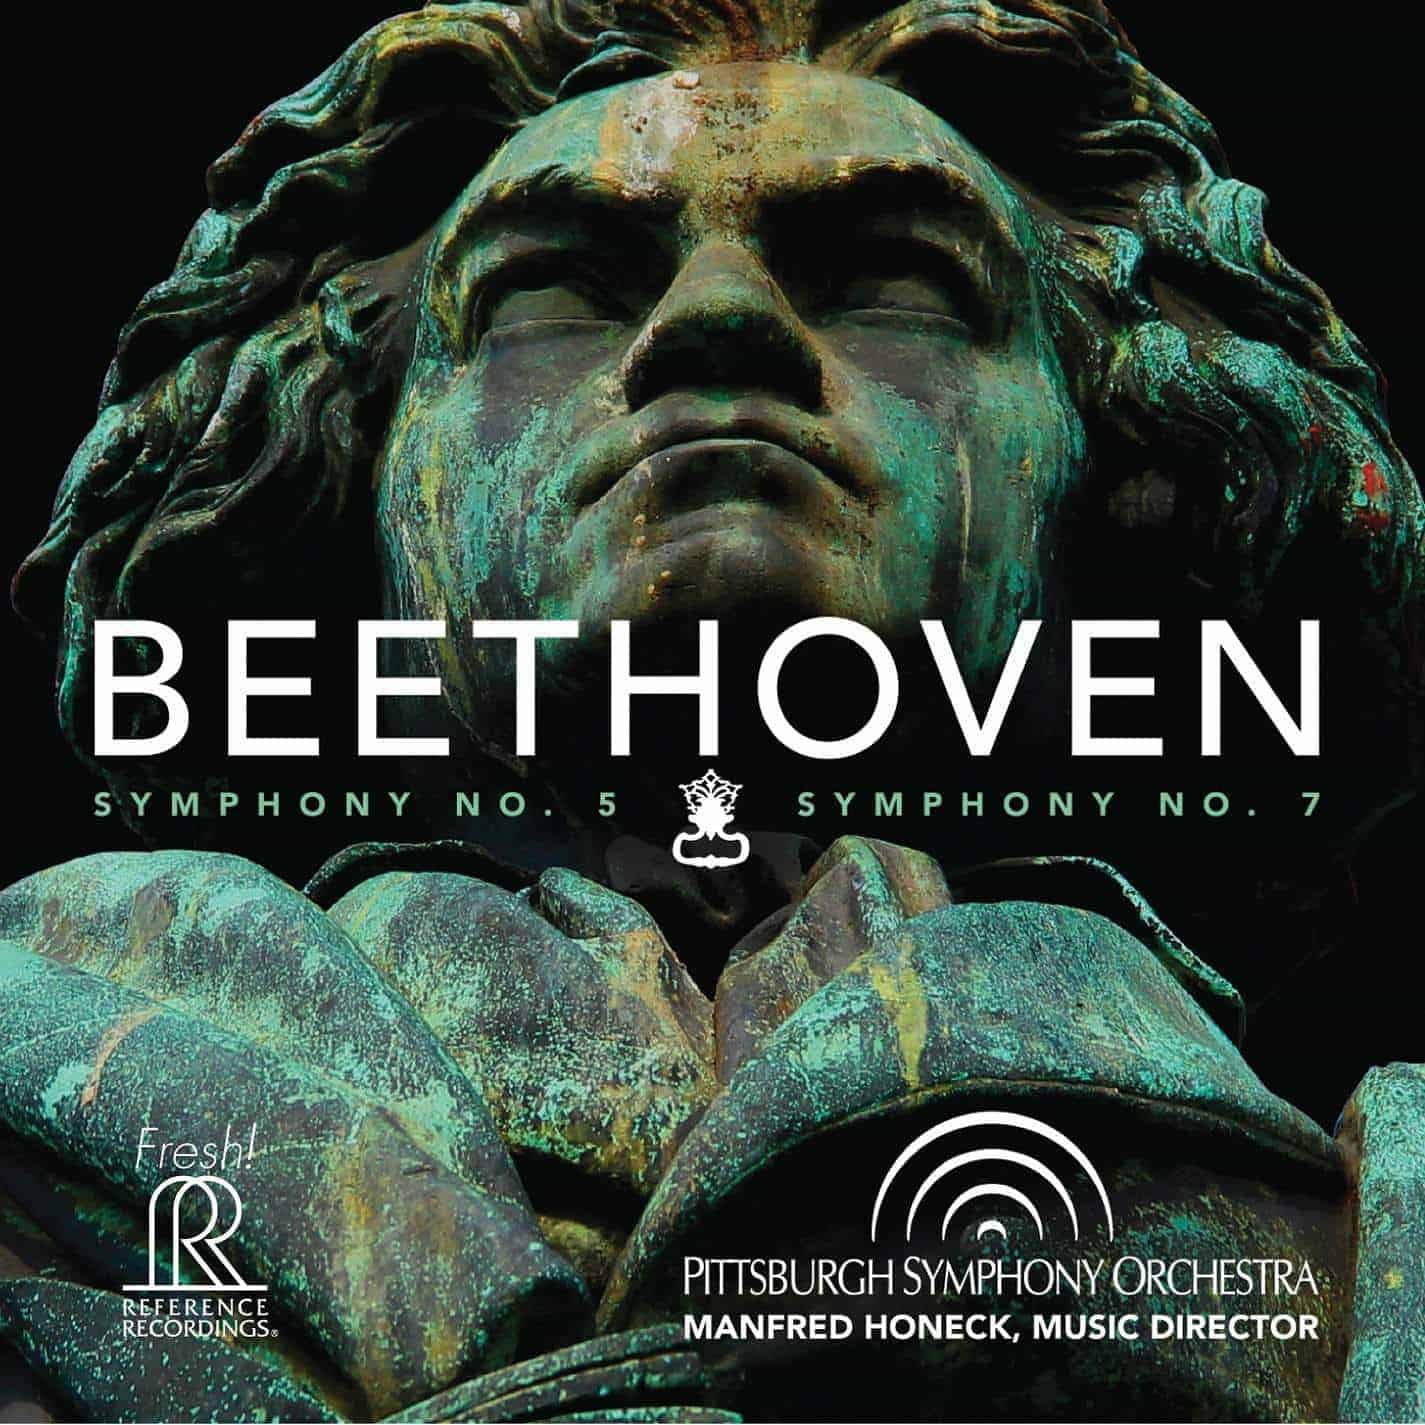 Pittsburgh Symphony: Beethoven - Symphonies Nos. 5 & 7